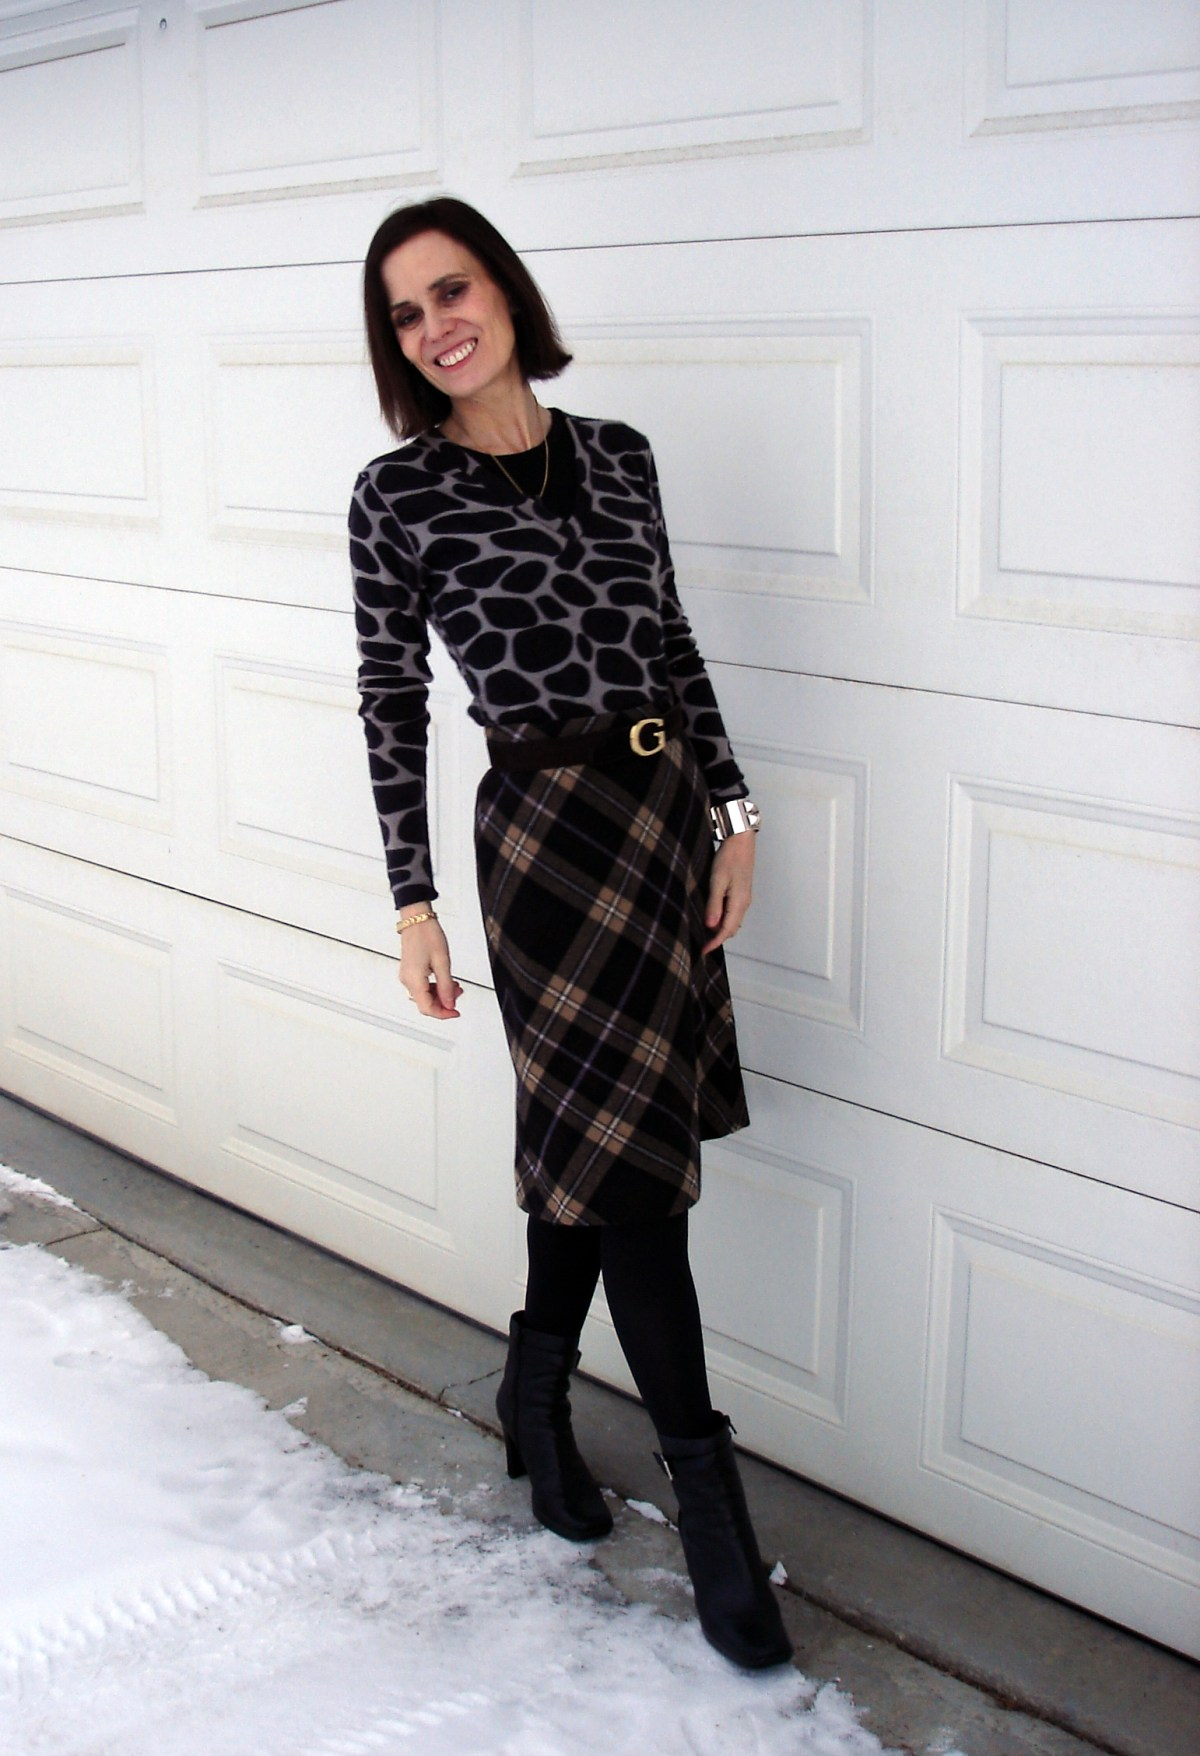 ootd with diagonal plaid A-line skirt with giraffe print sweater